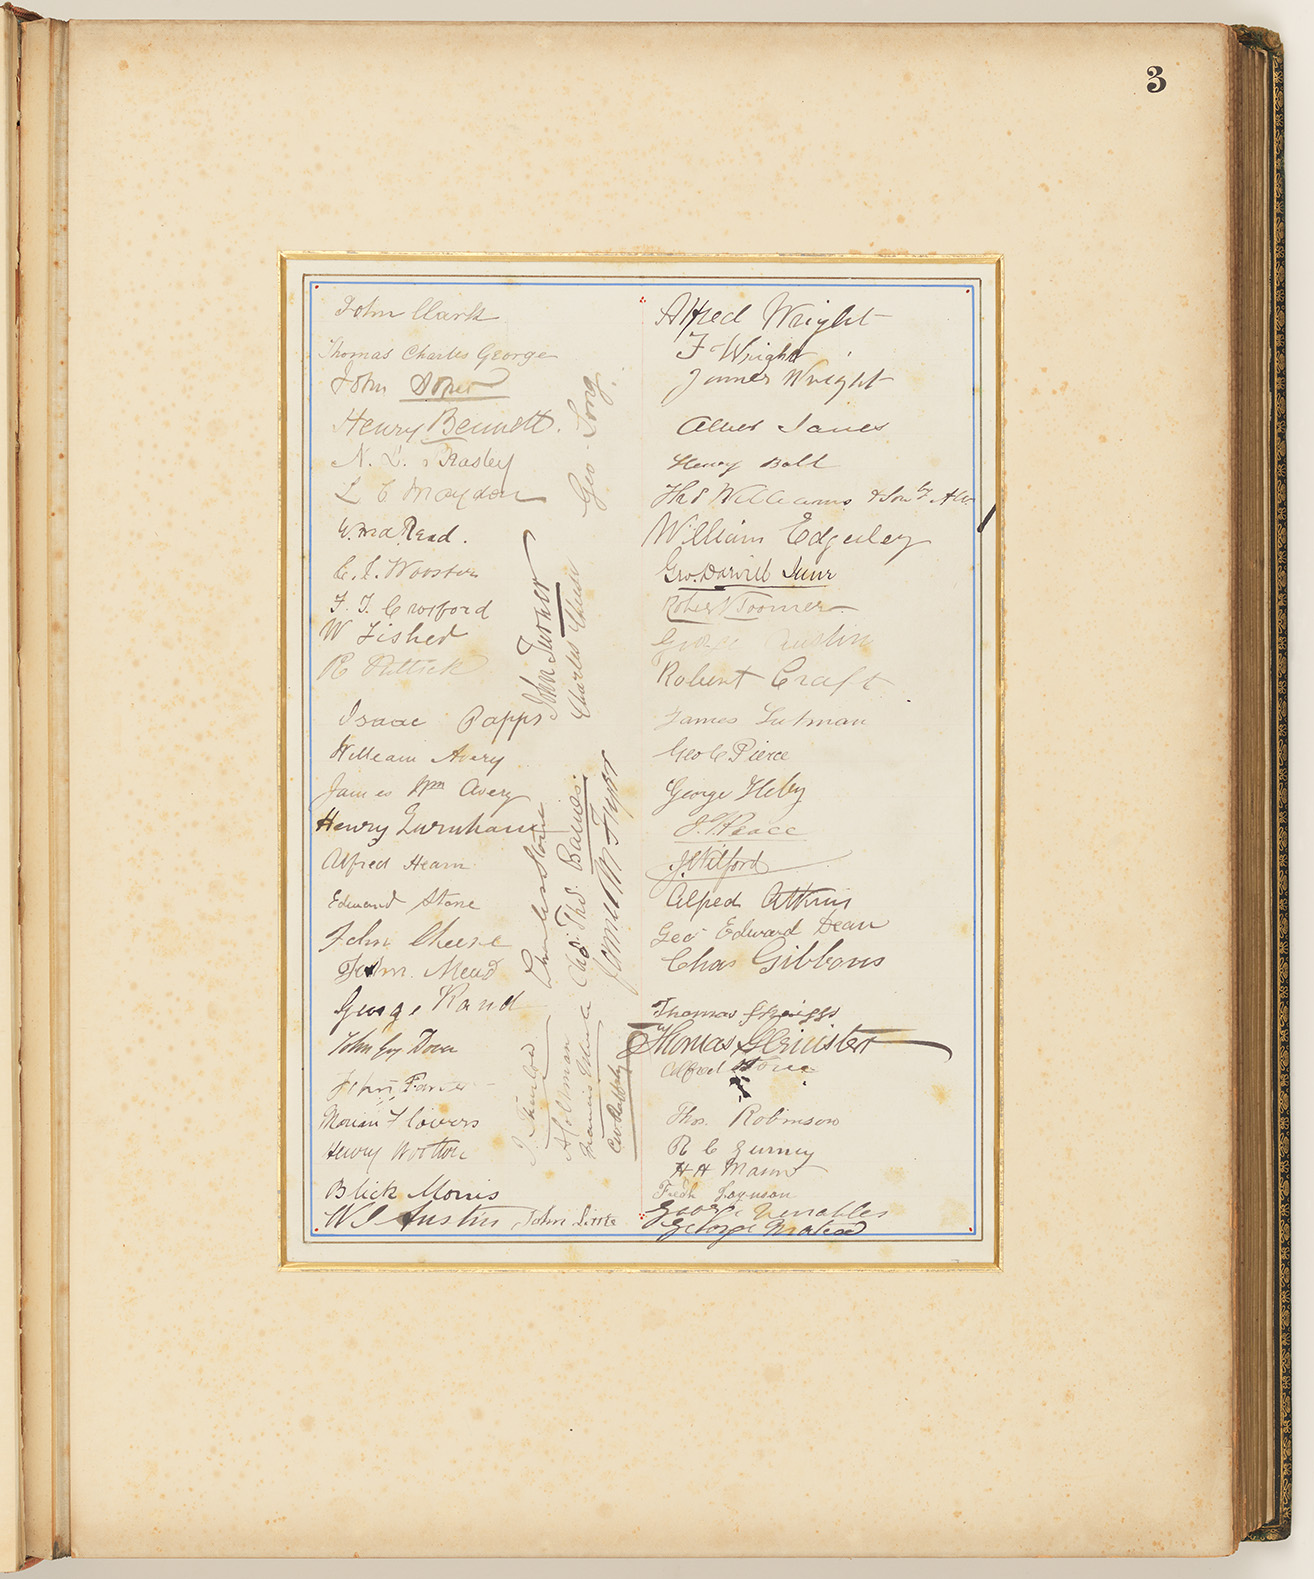 03 Addresses Presented to Lord Carrington Governor of New South Wales No. 4, page 3 signature panel